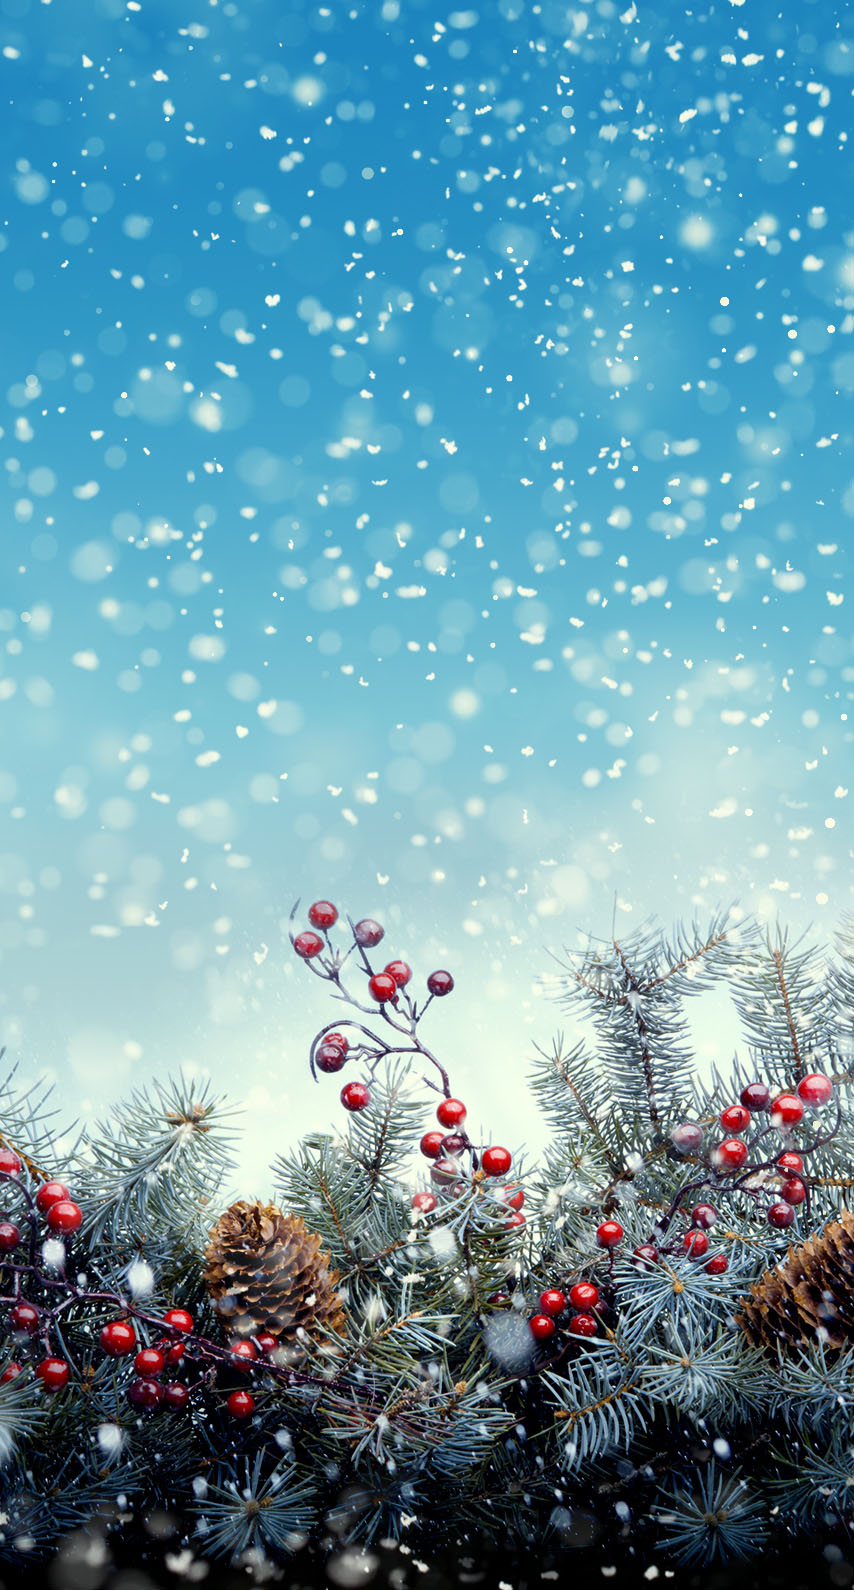 holiday wallpaper | holiday wallpaper | pinterest | holiday